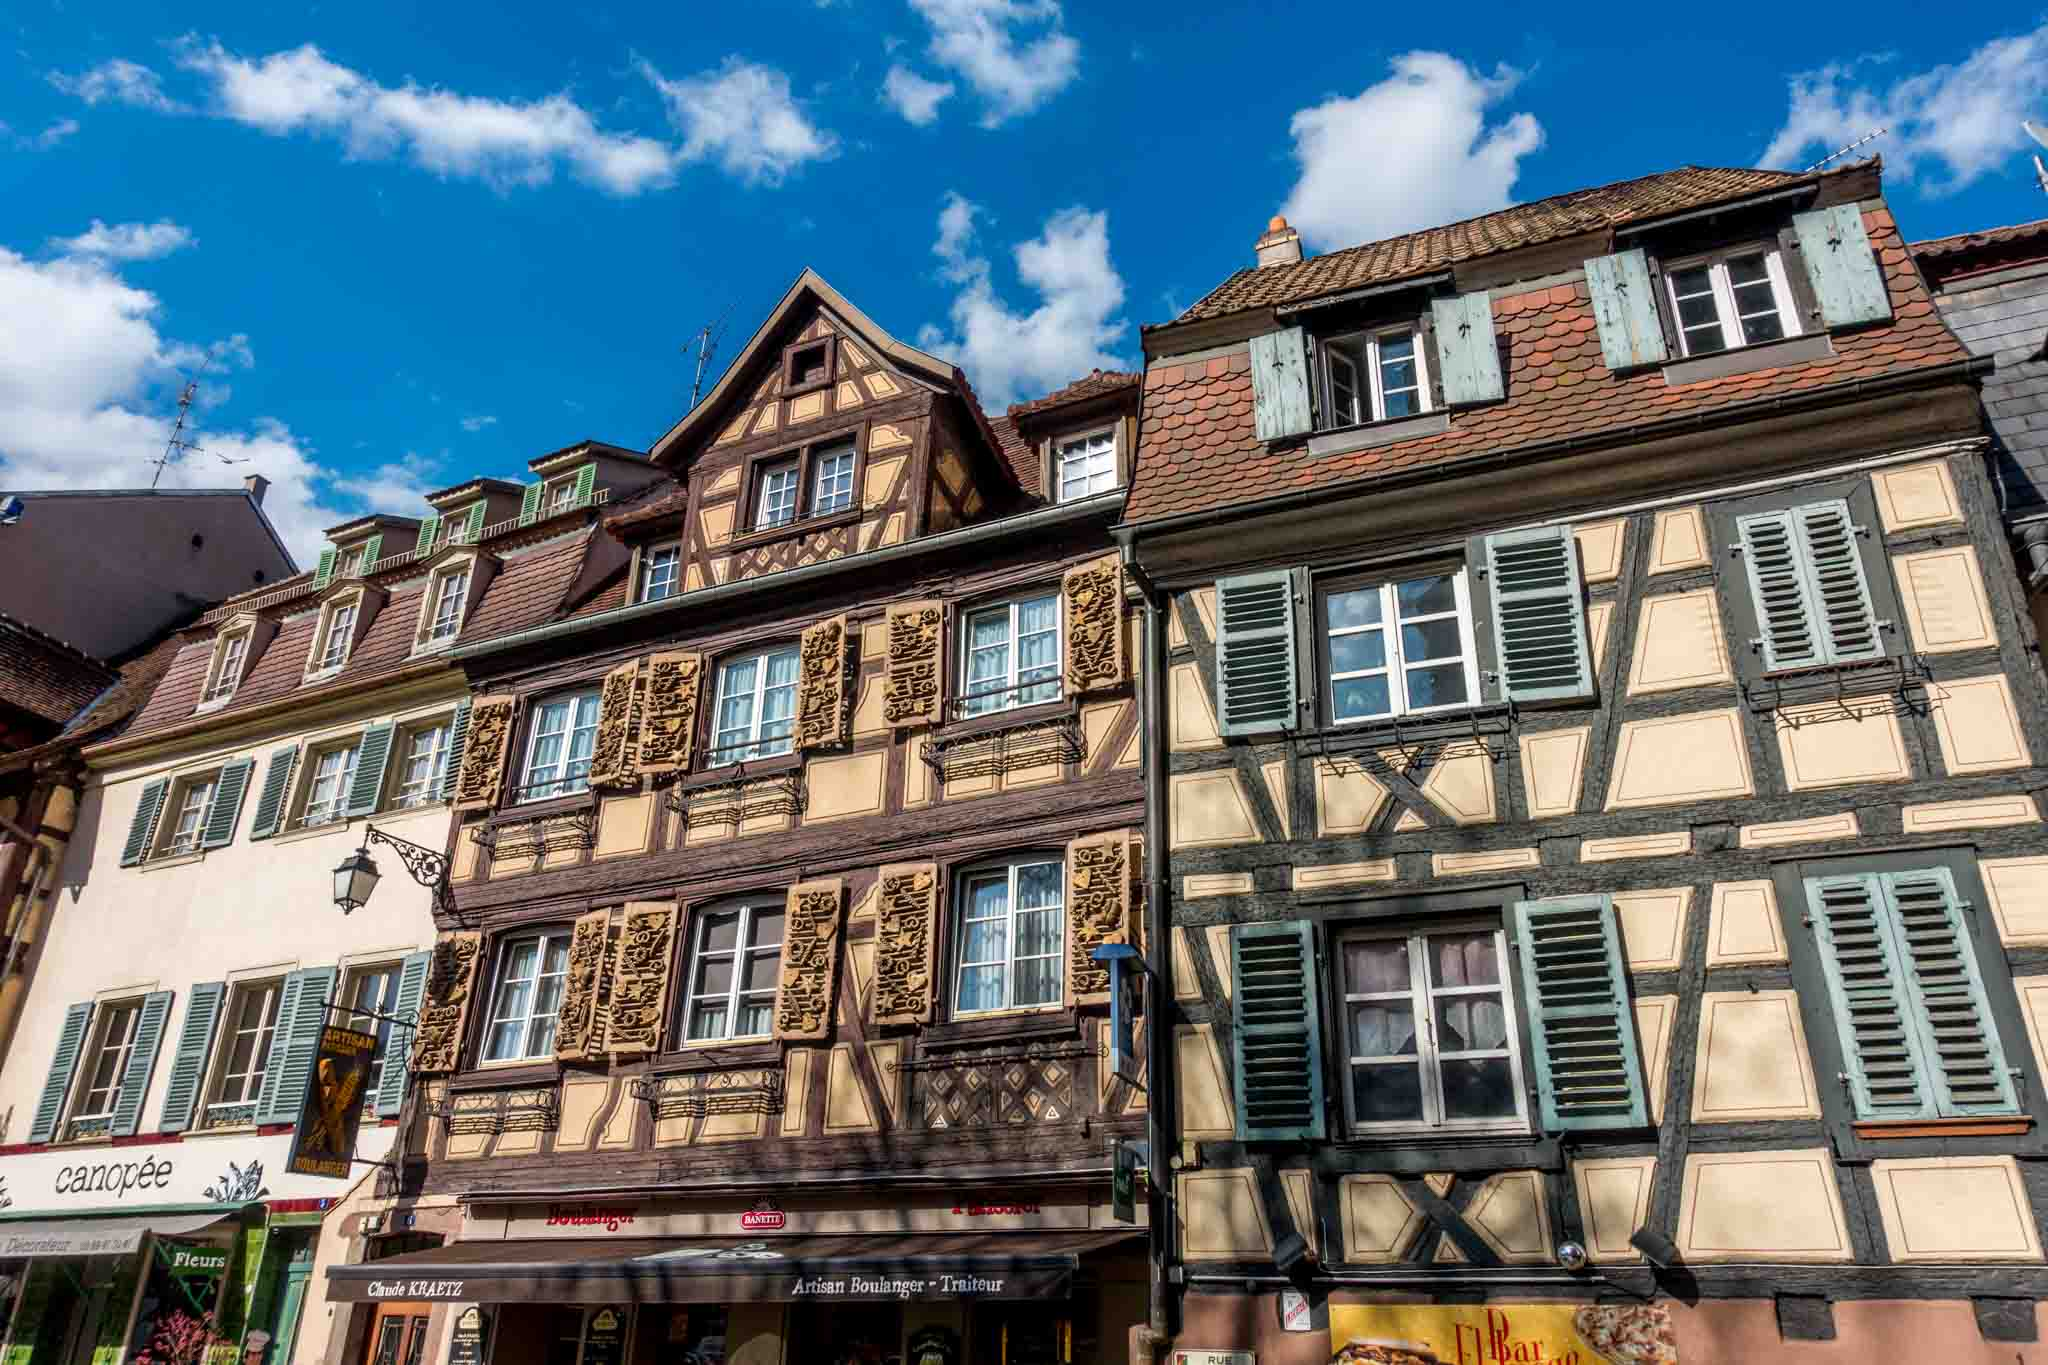 Half-timbered buildings dominate the architecture of Colmar, Alsace France, a town influenced by both Germany and France